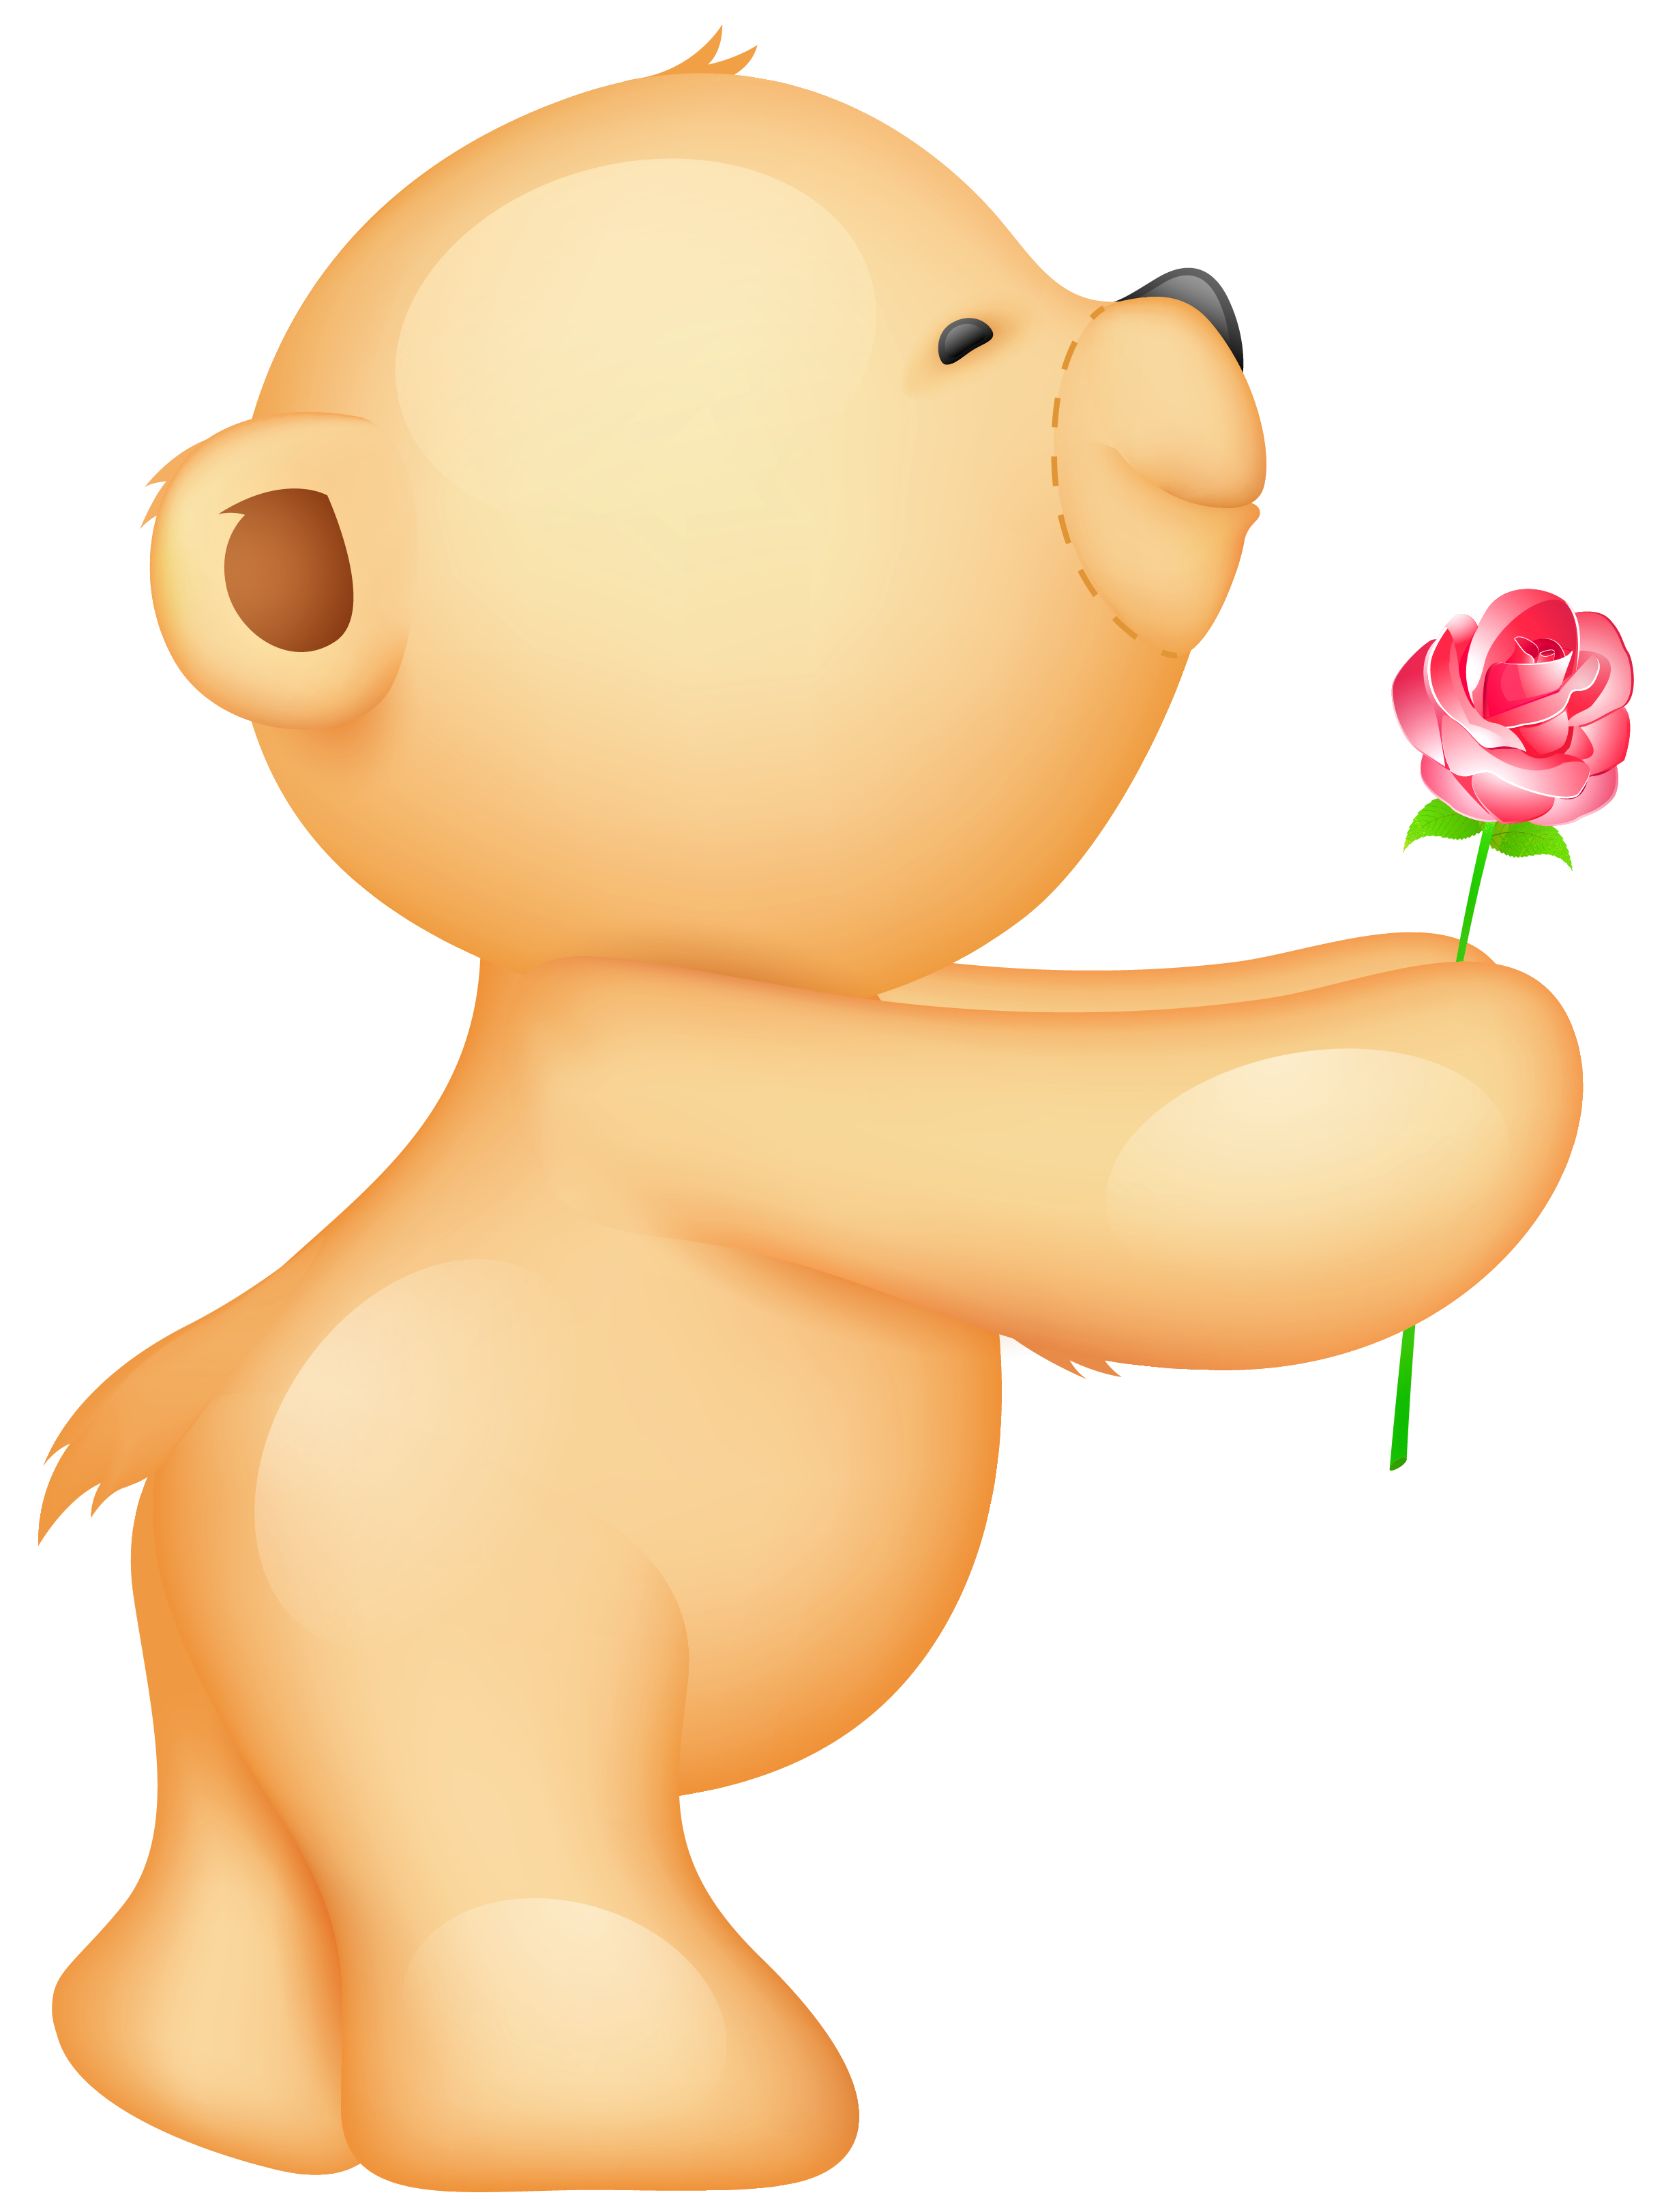 Cute valentine png. Teddy with rose clipart